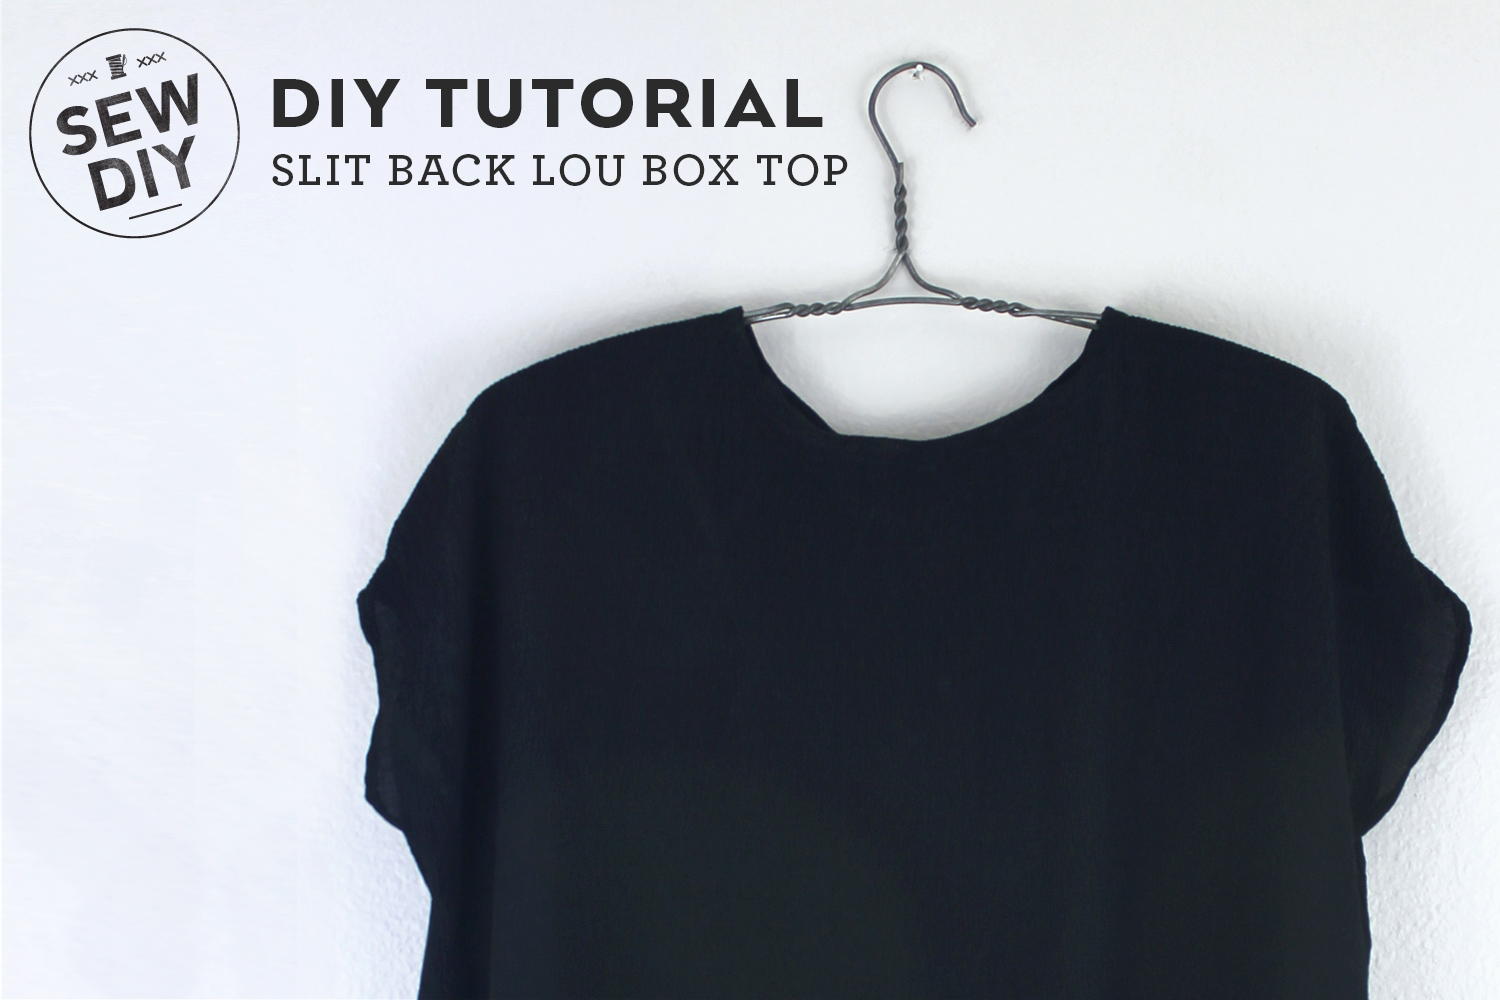 DIY Tutorial – Slit Back Lou Box Top | Sew DIY